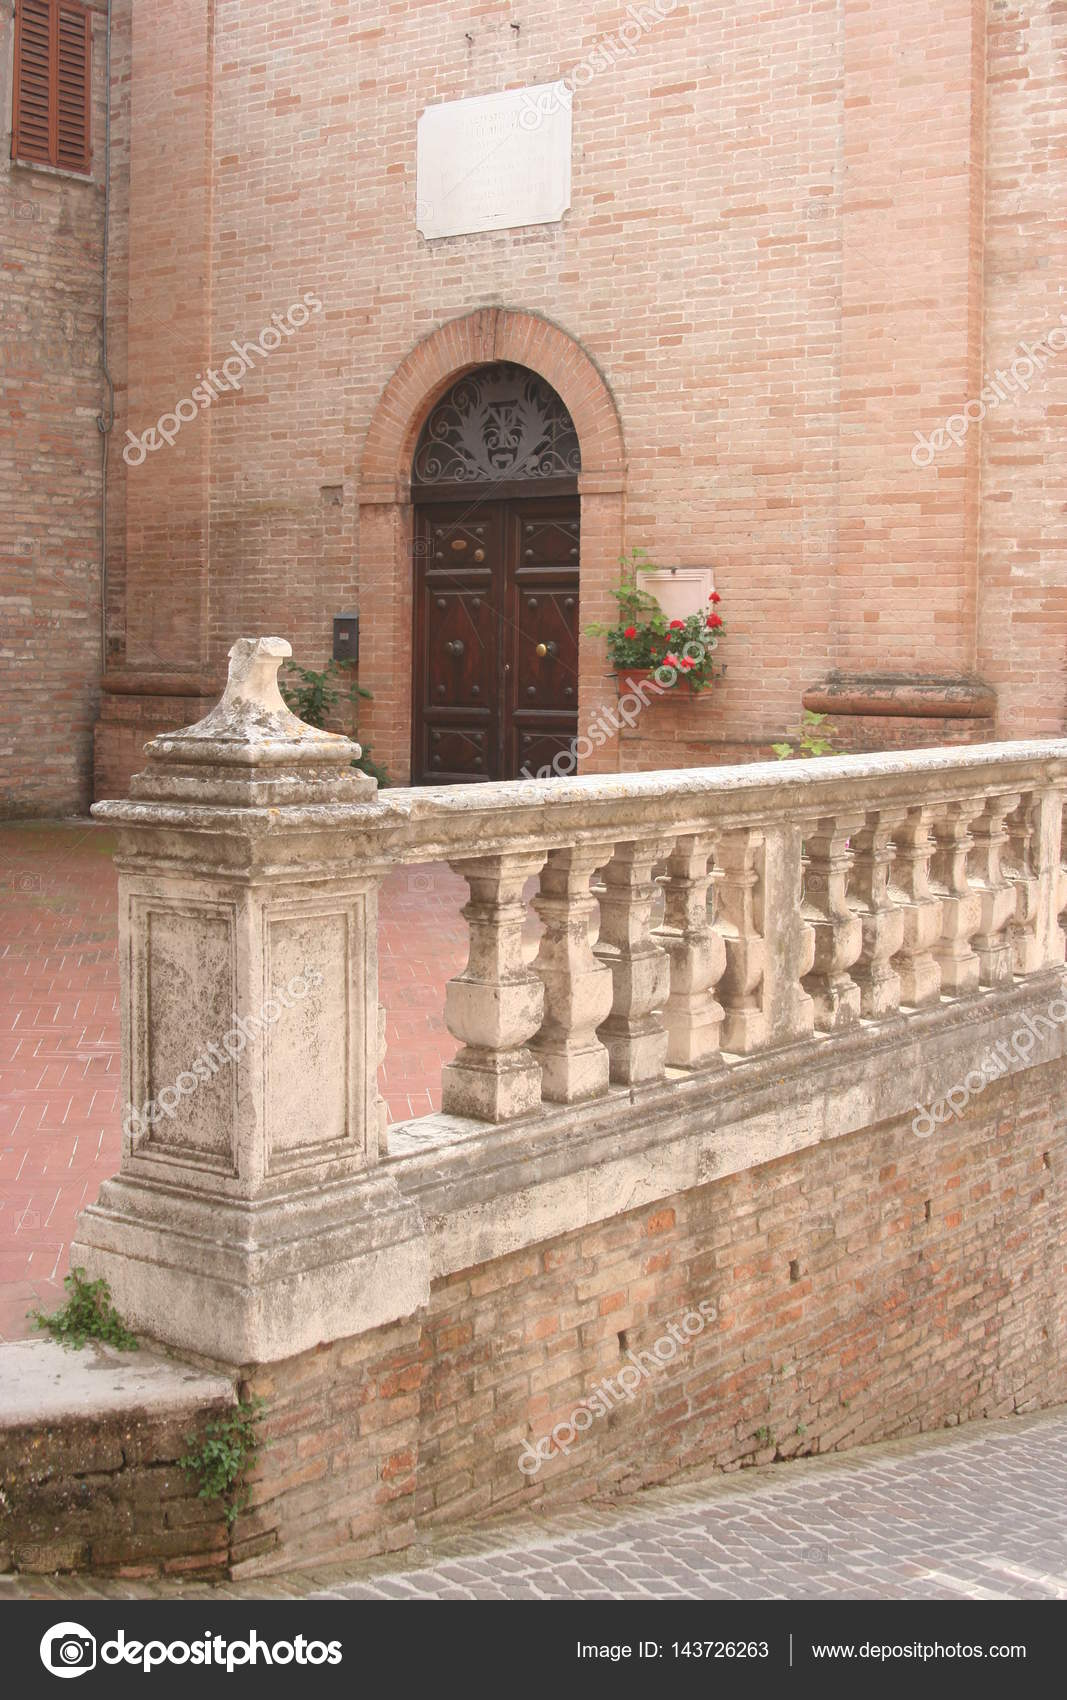 Details Of A Renaissance Palace In Urbino Downtown Italy